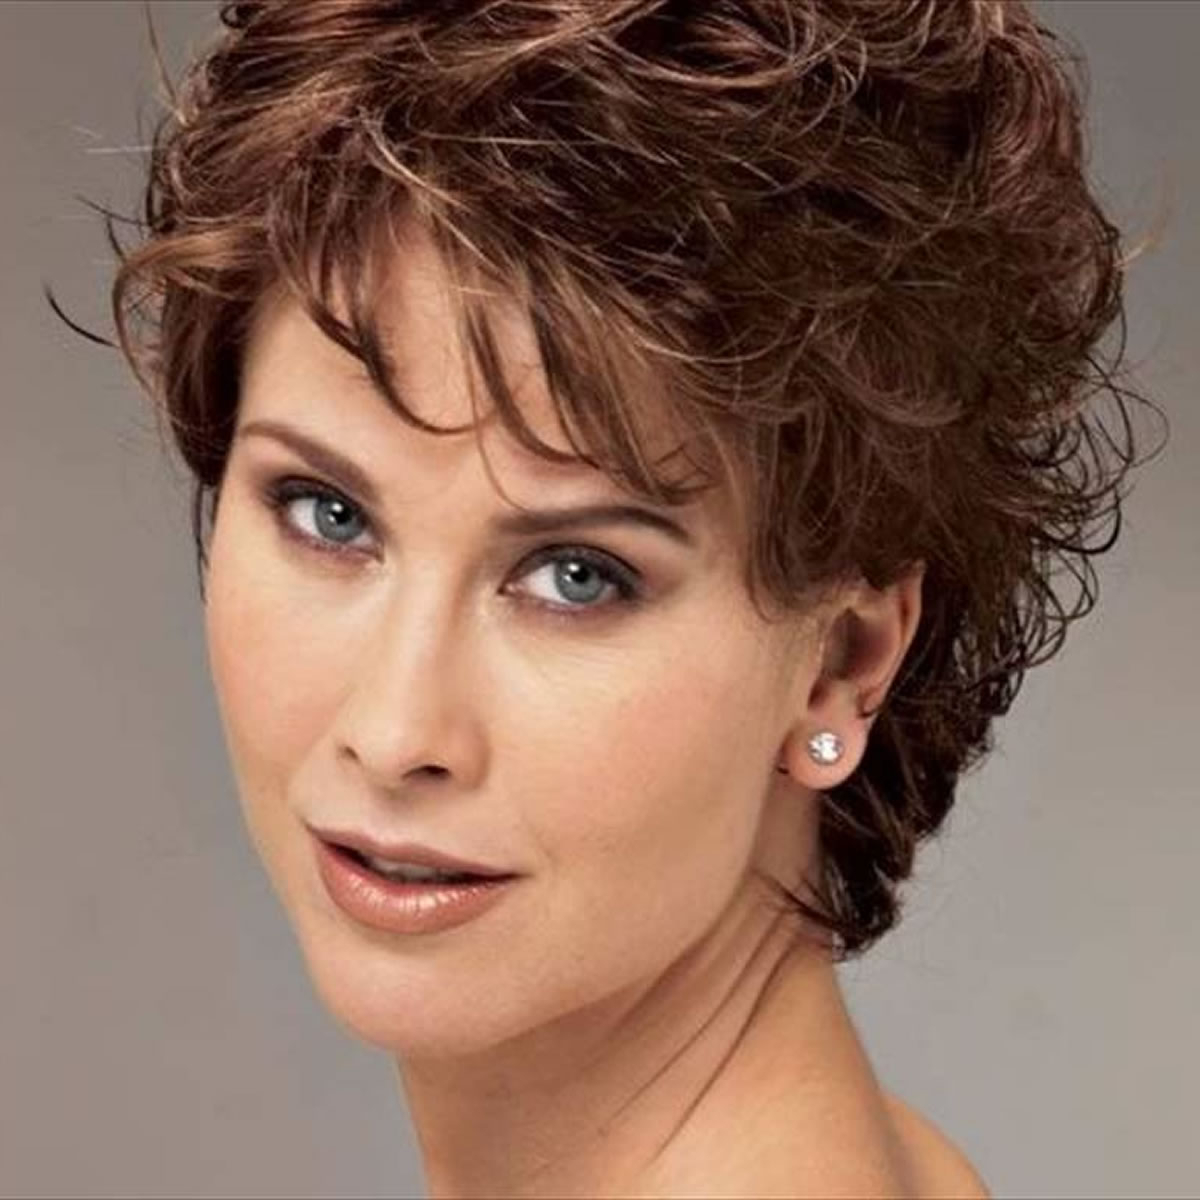 Curly Short Hairstyles For Older Women Over 50 – Best Short Haircuts With Short Haircuts For Women Over 40 With Curly Hair (View 19 of 25)